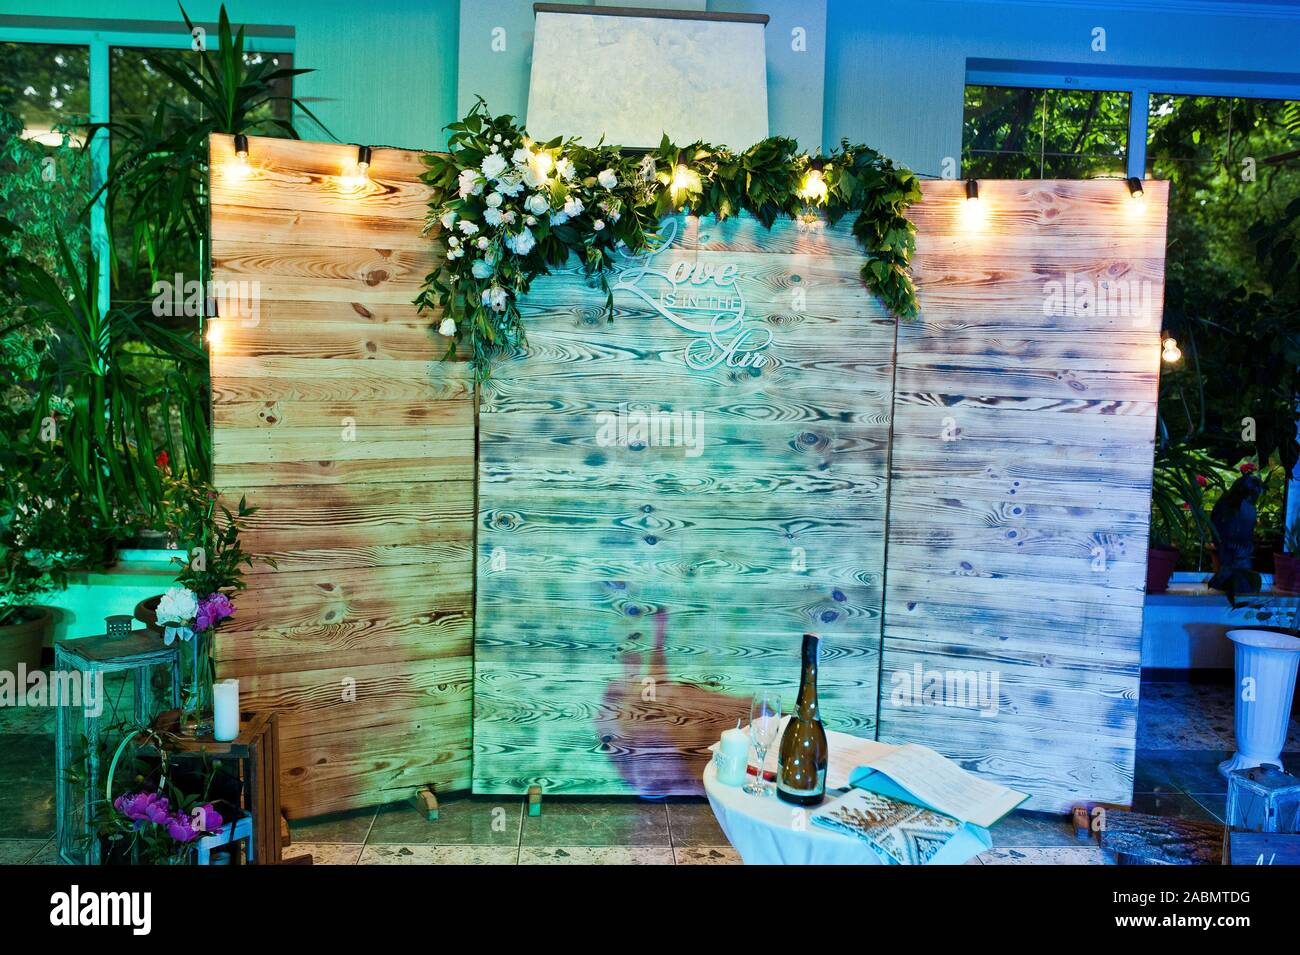 Beautiful Wedding Set Decoration In The Restaurant Rustic Wooden Photo Zone Stock Photo Alamy